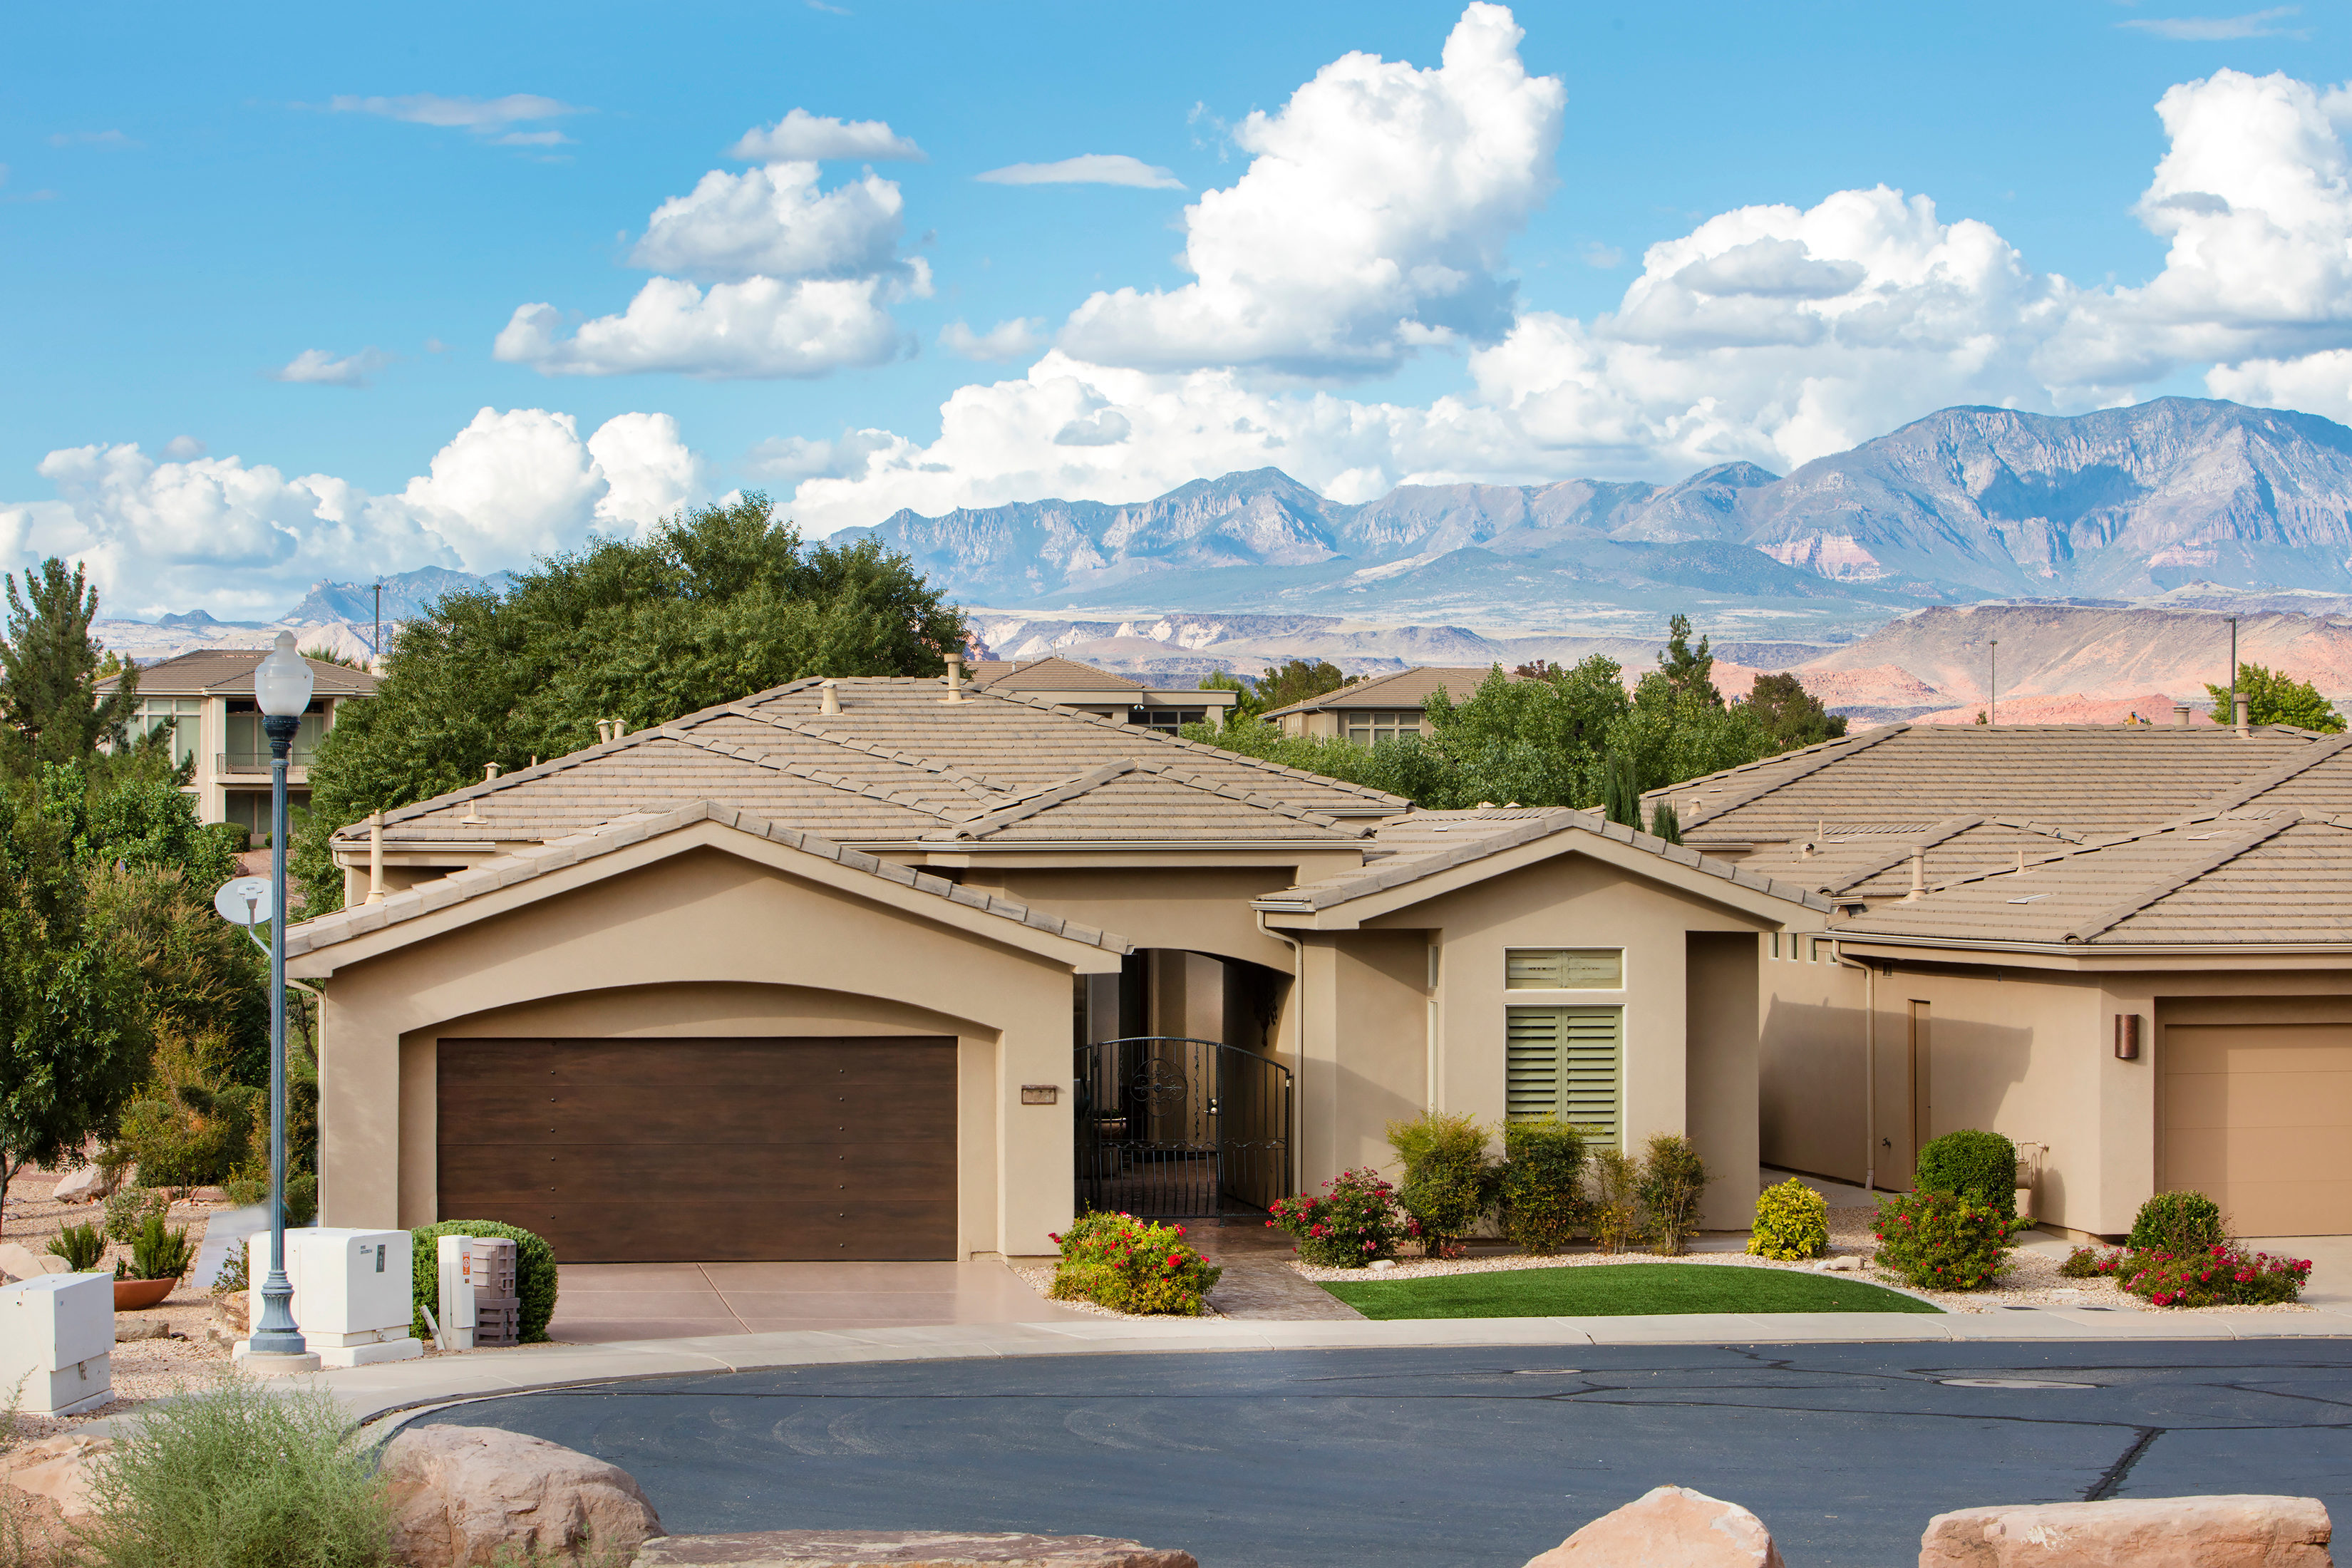 Single Family Home for Sale at Superb Sunbrook Home 2335 West Sunbrook Drive #31 St. George, Utah, 84770 United States